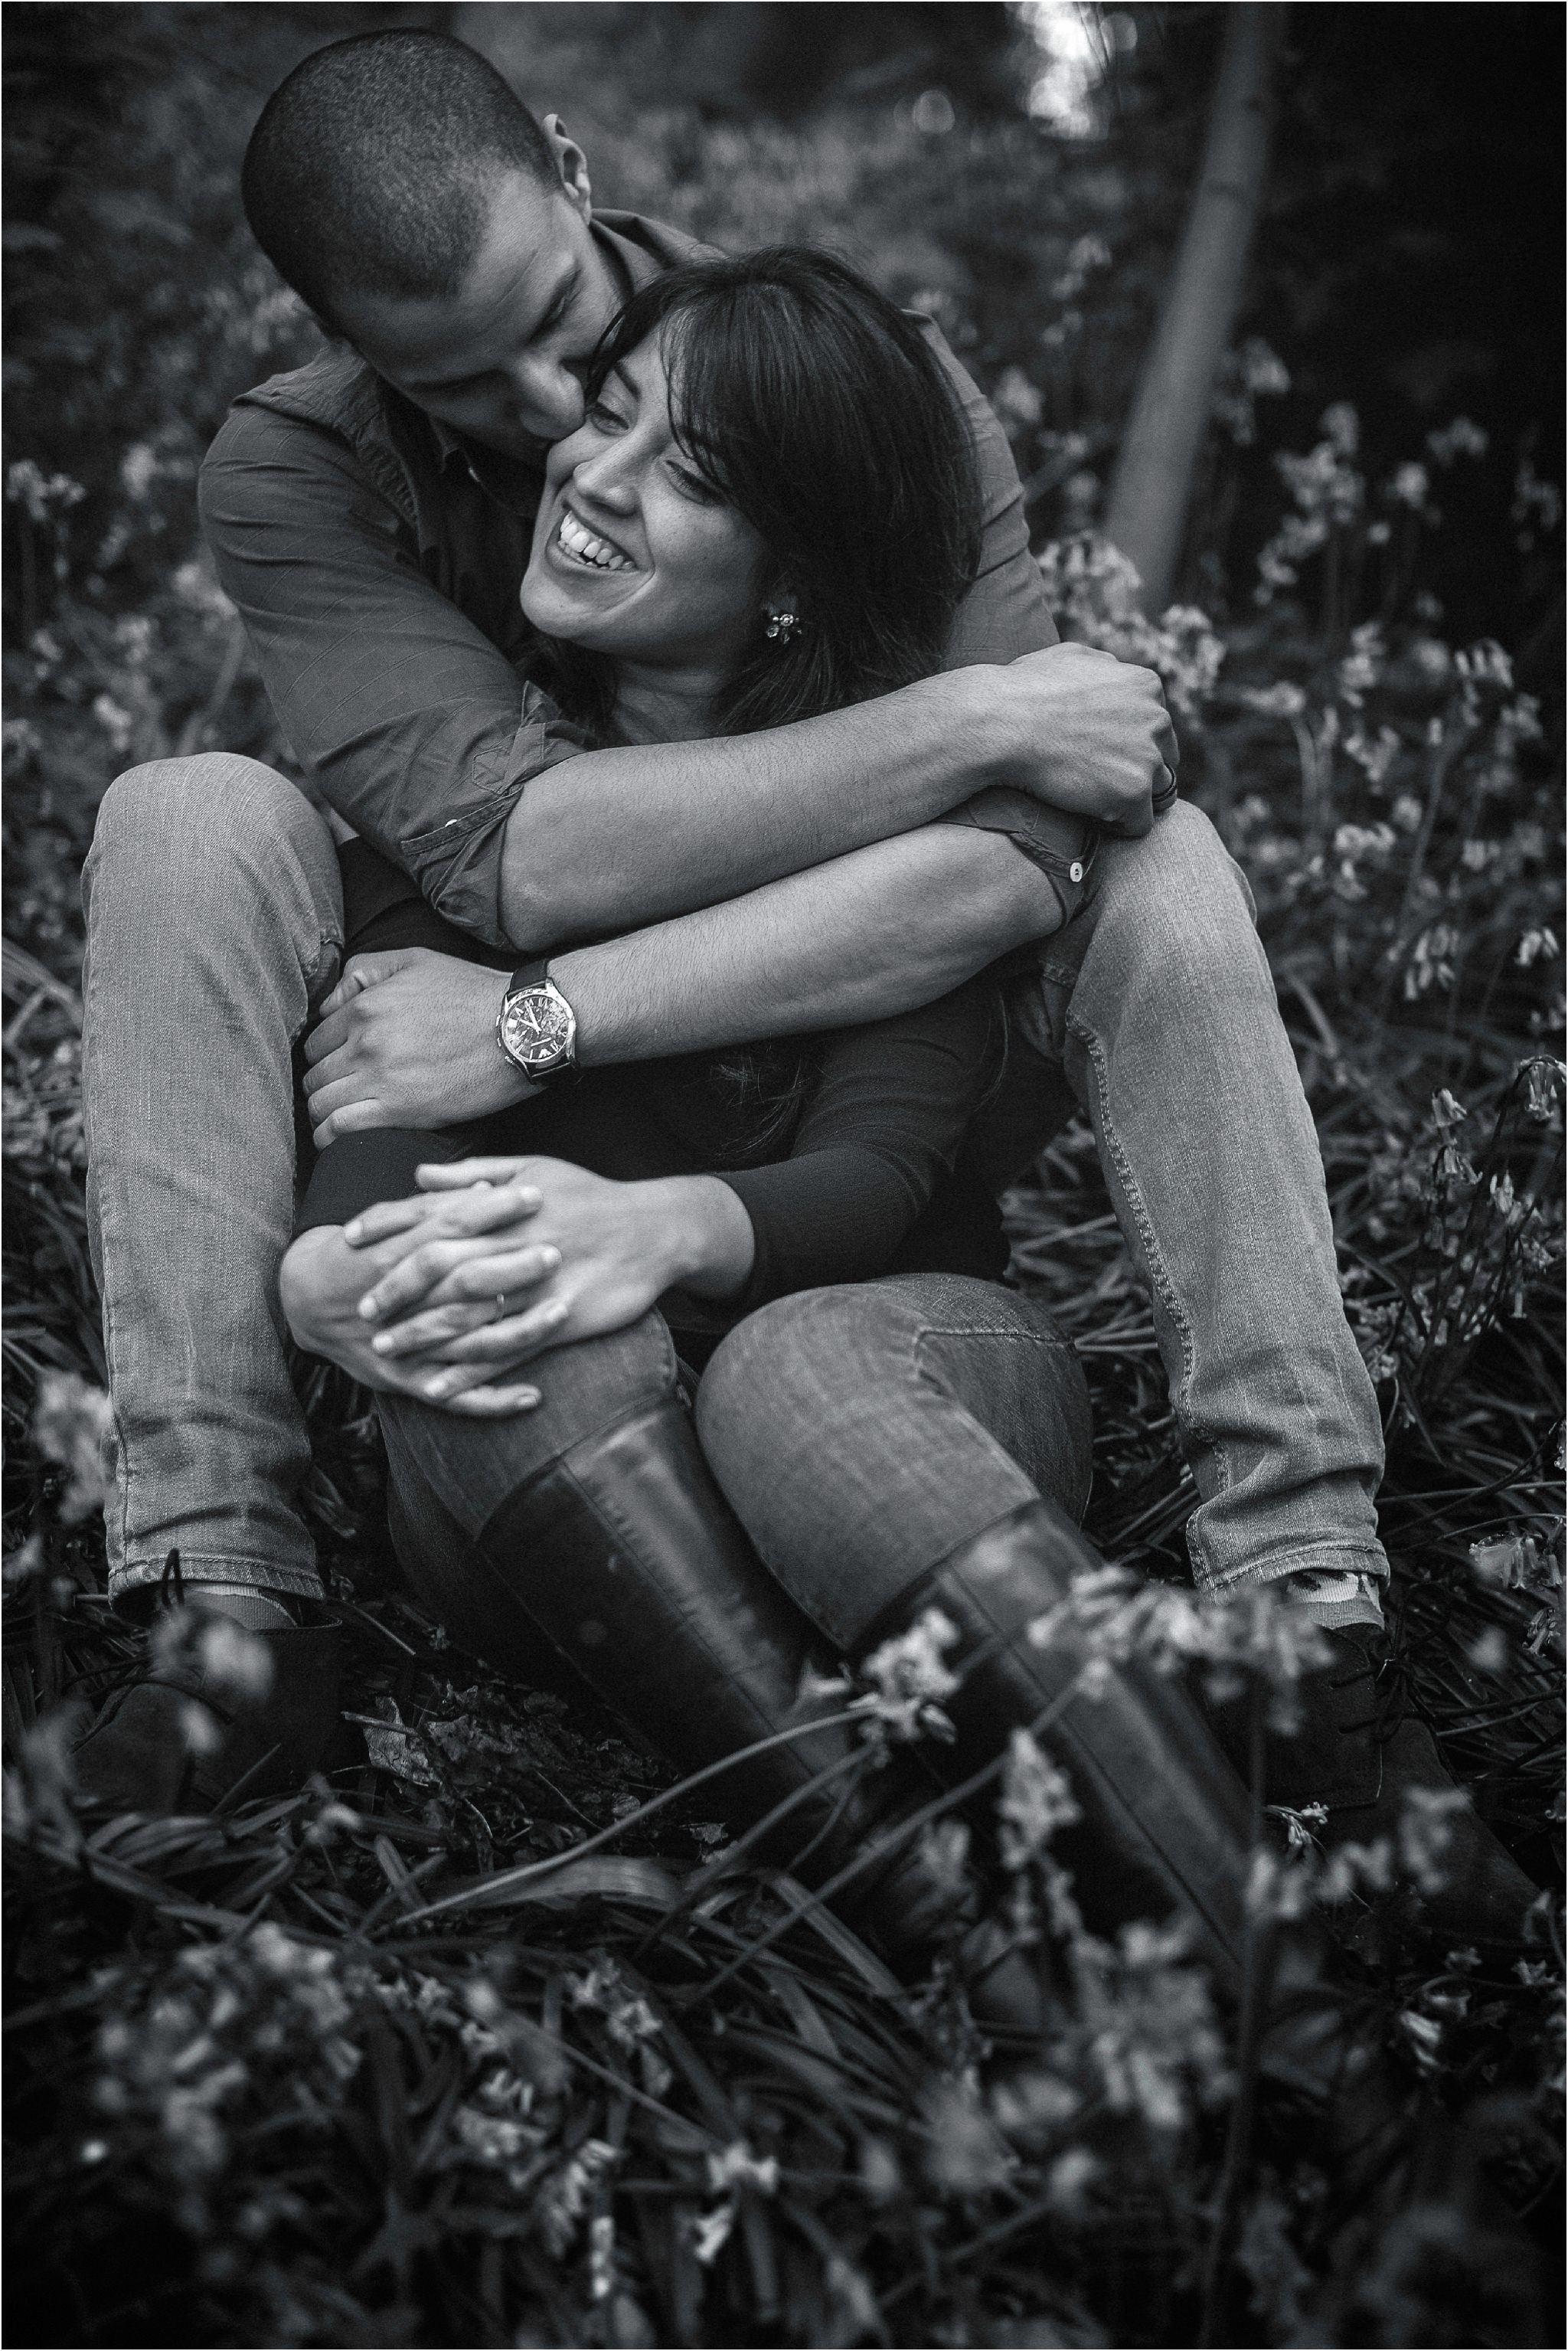 Black and white image of a couple cuddling amongst bluebells. The man is kissing his lady on the cheek whilst she smiles.